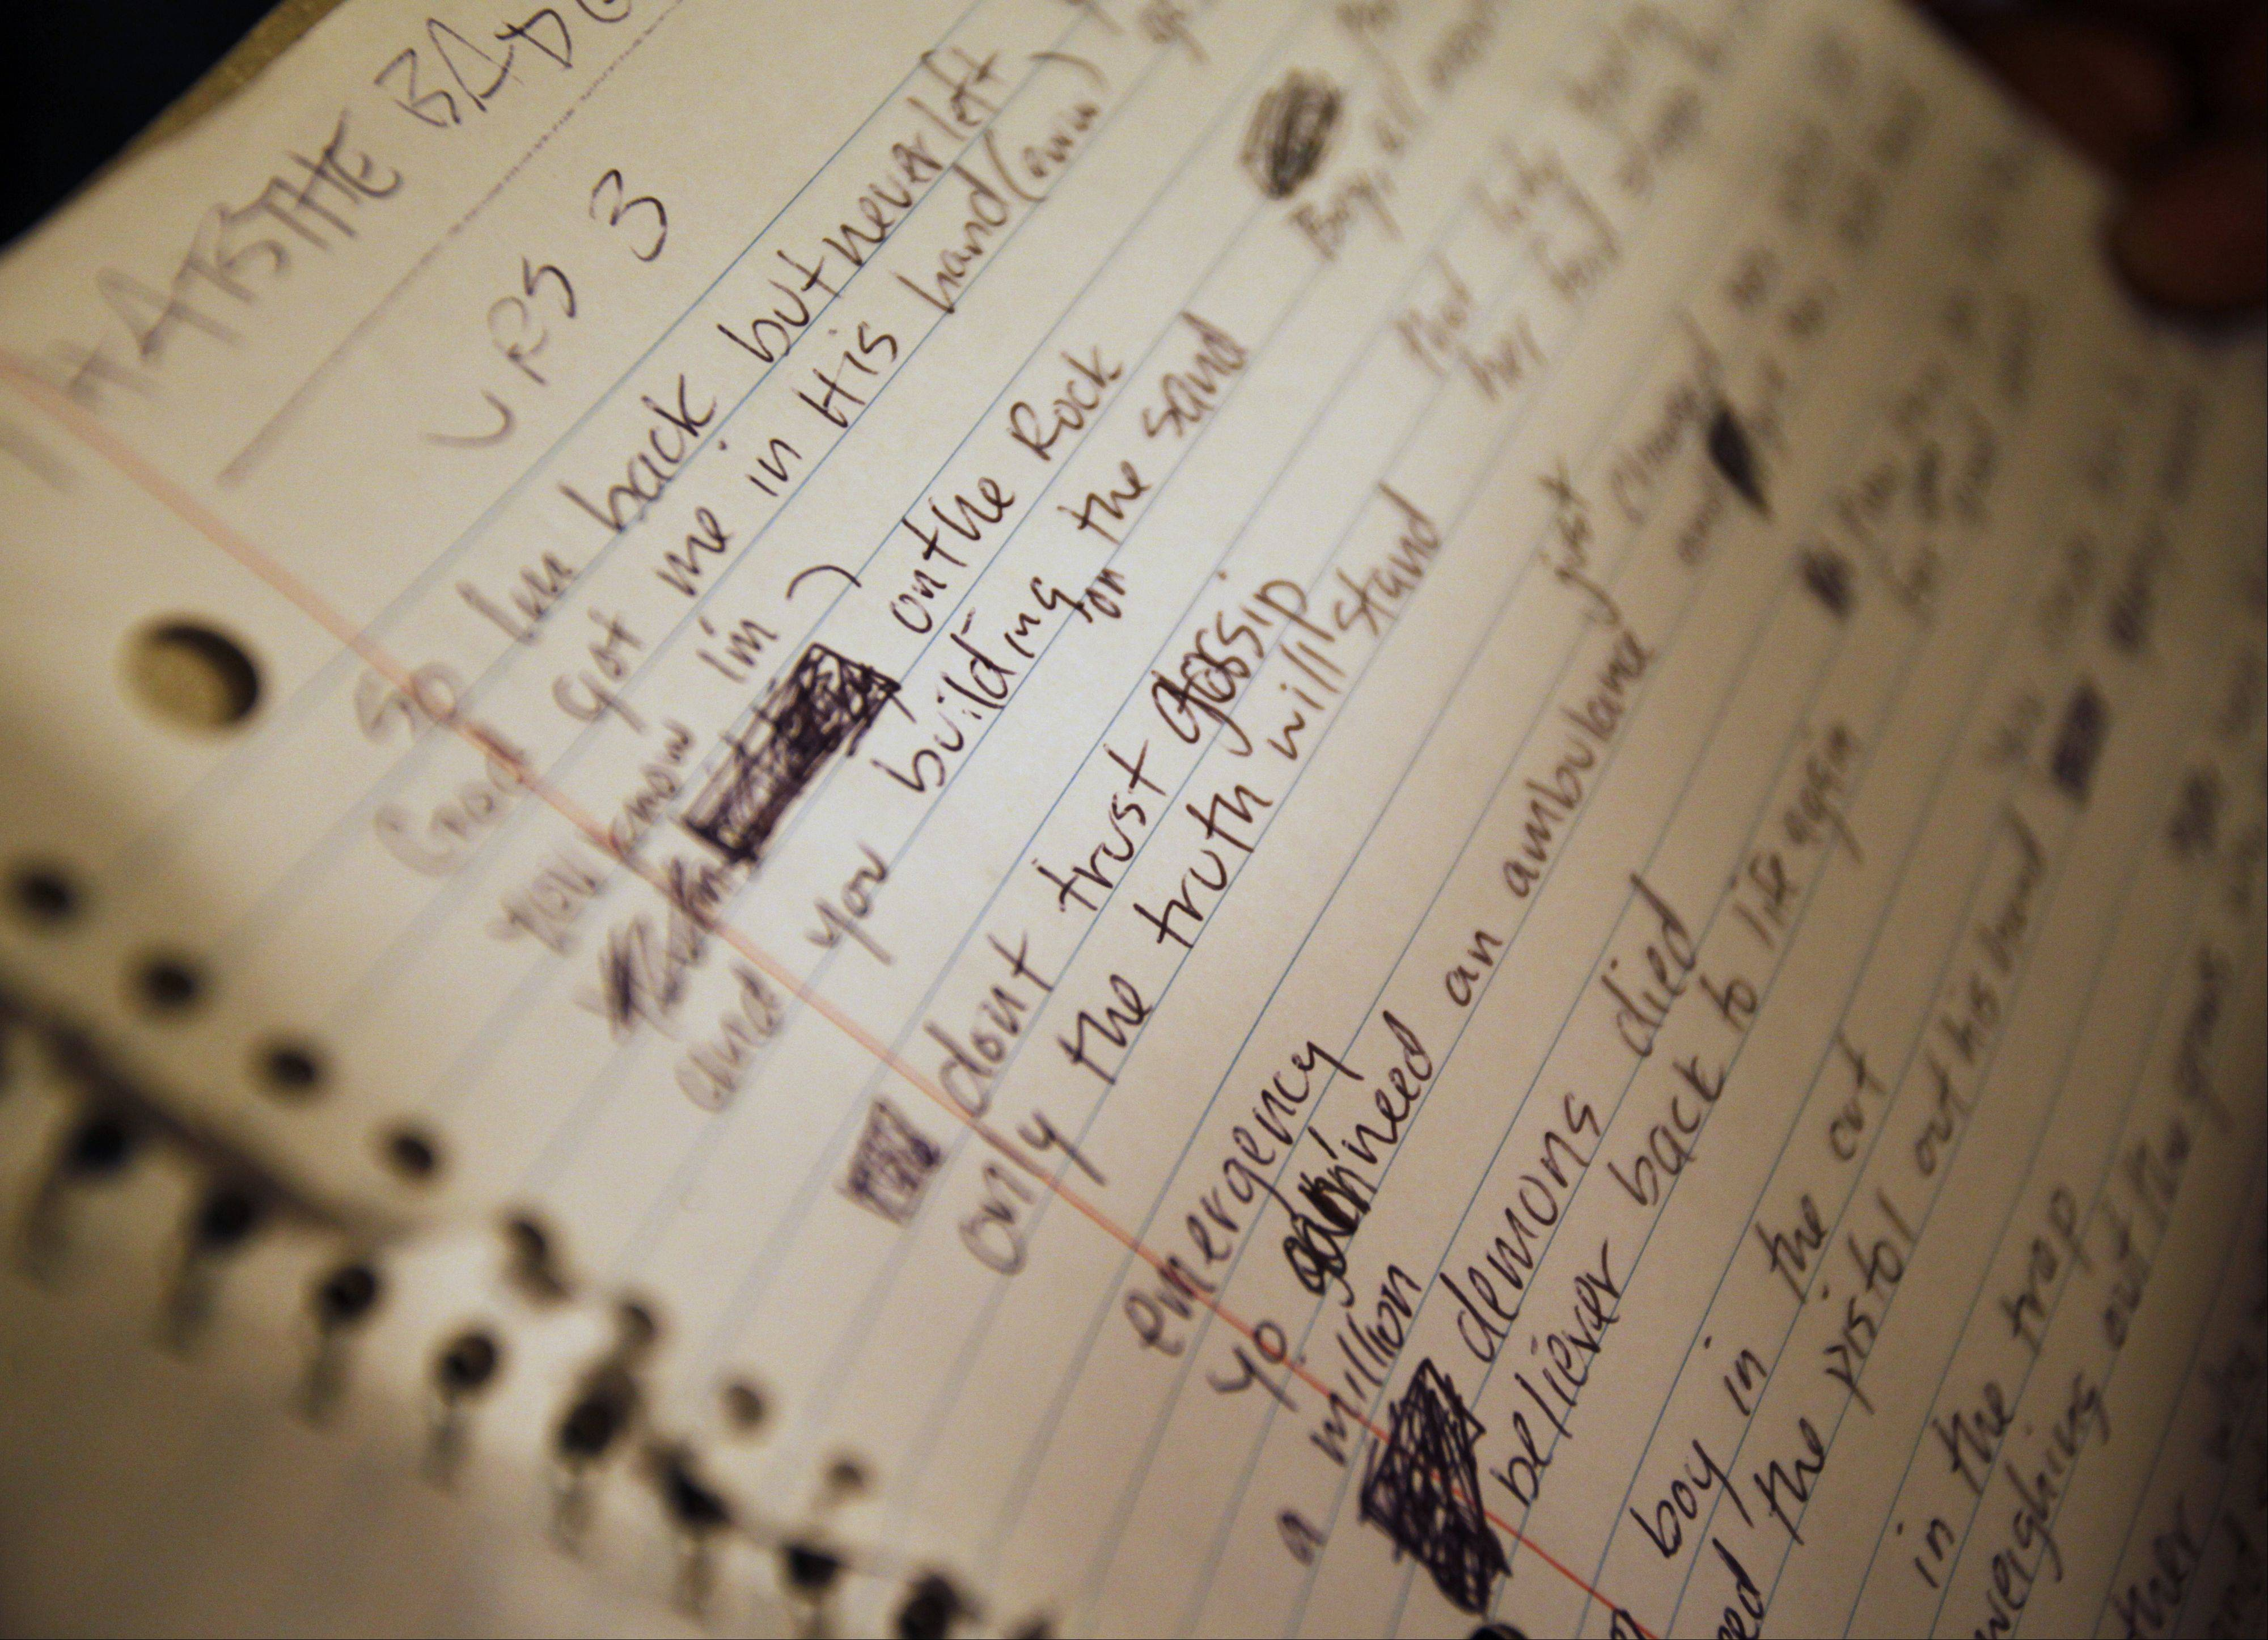 One of Chairez' notebooks is filled with lyrics to a song he wrote.